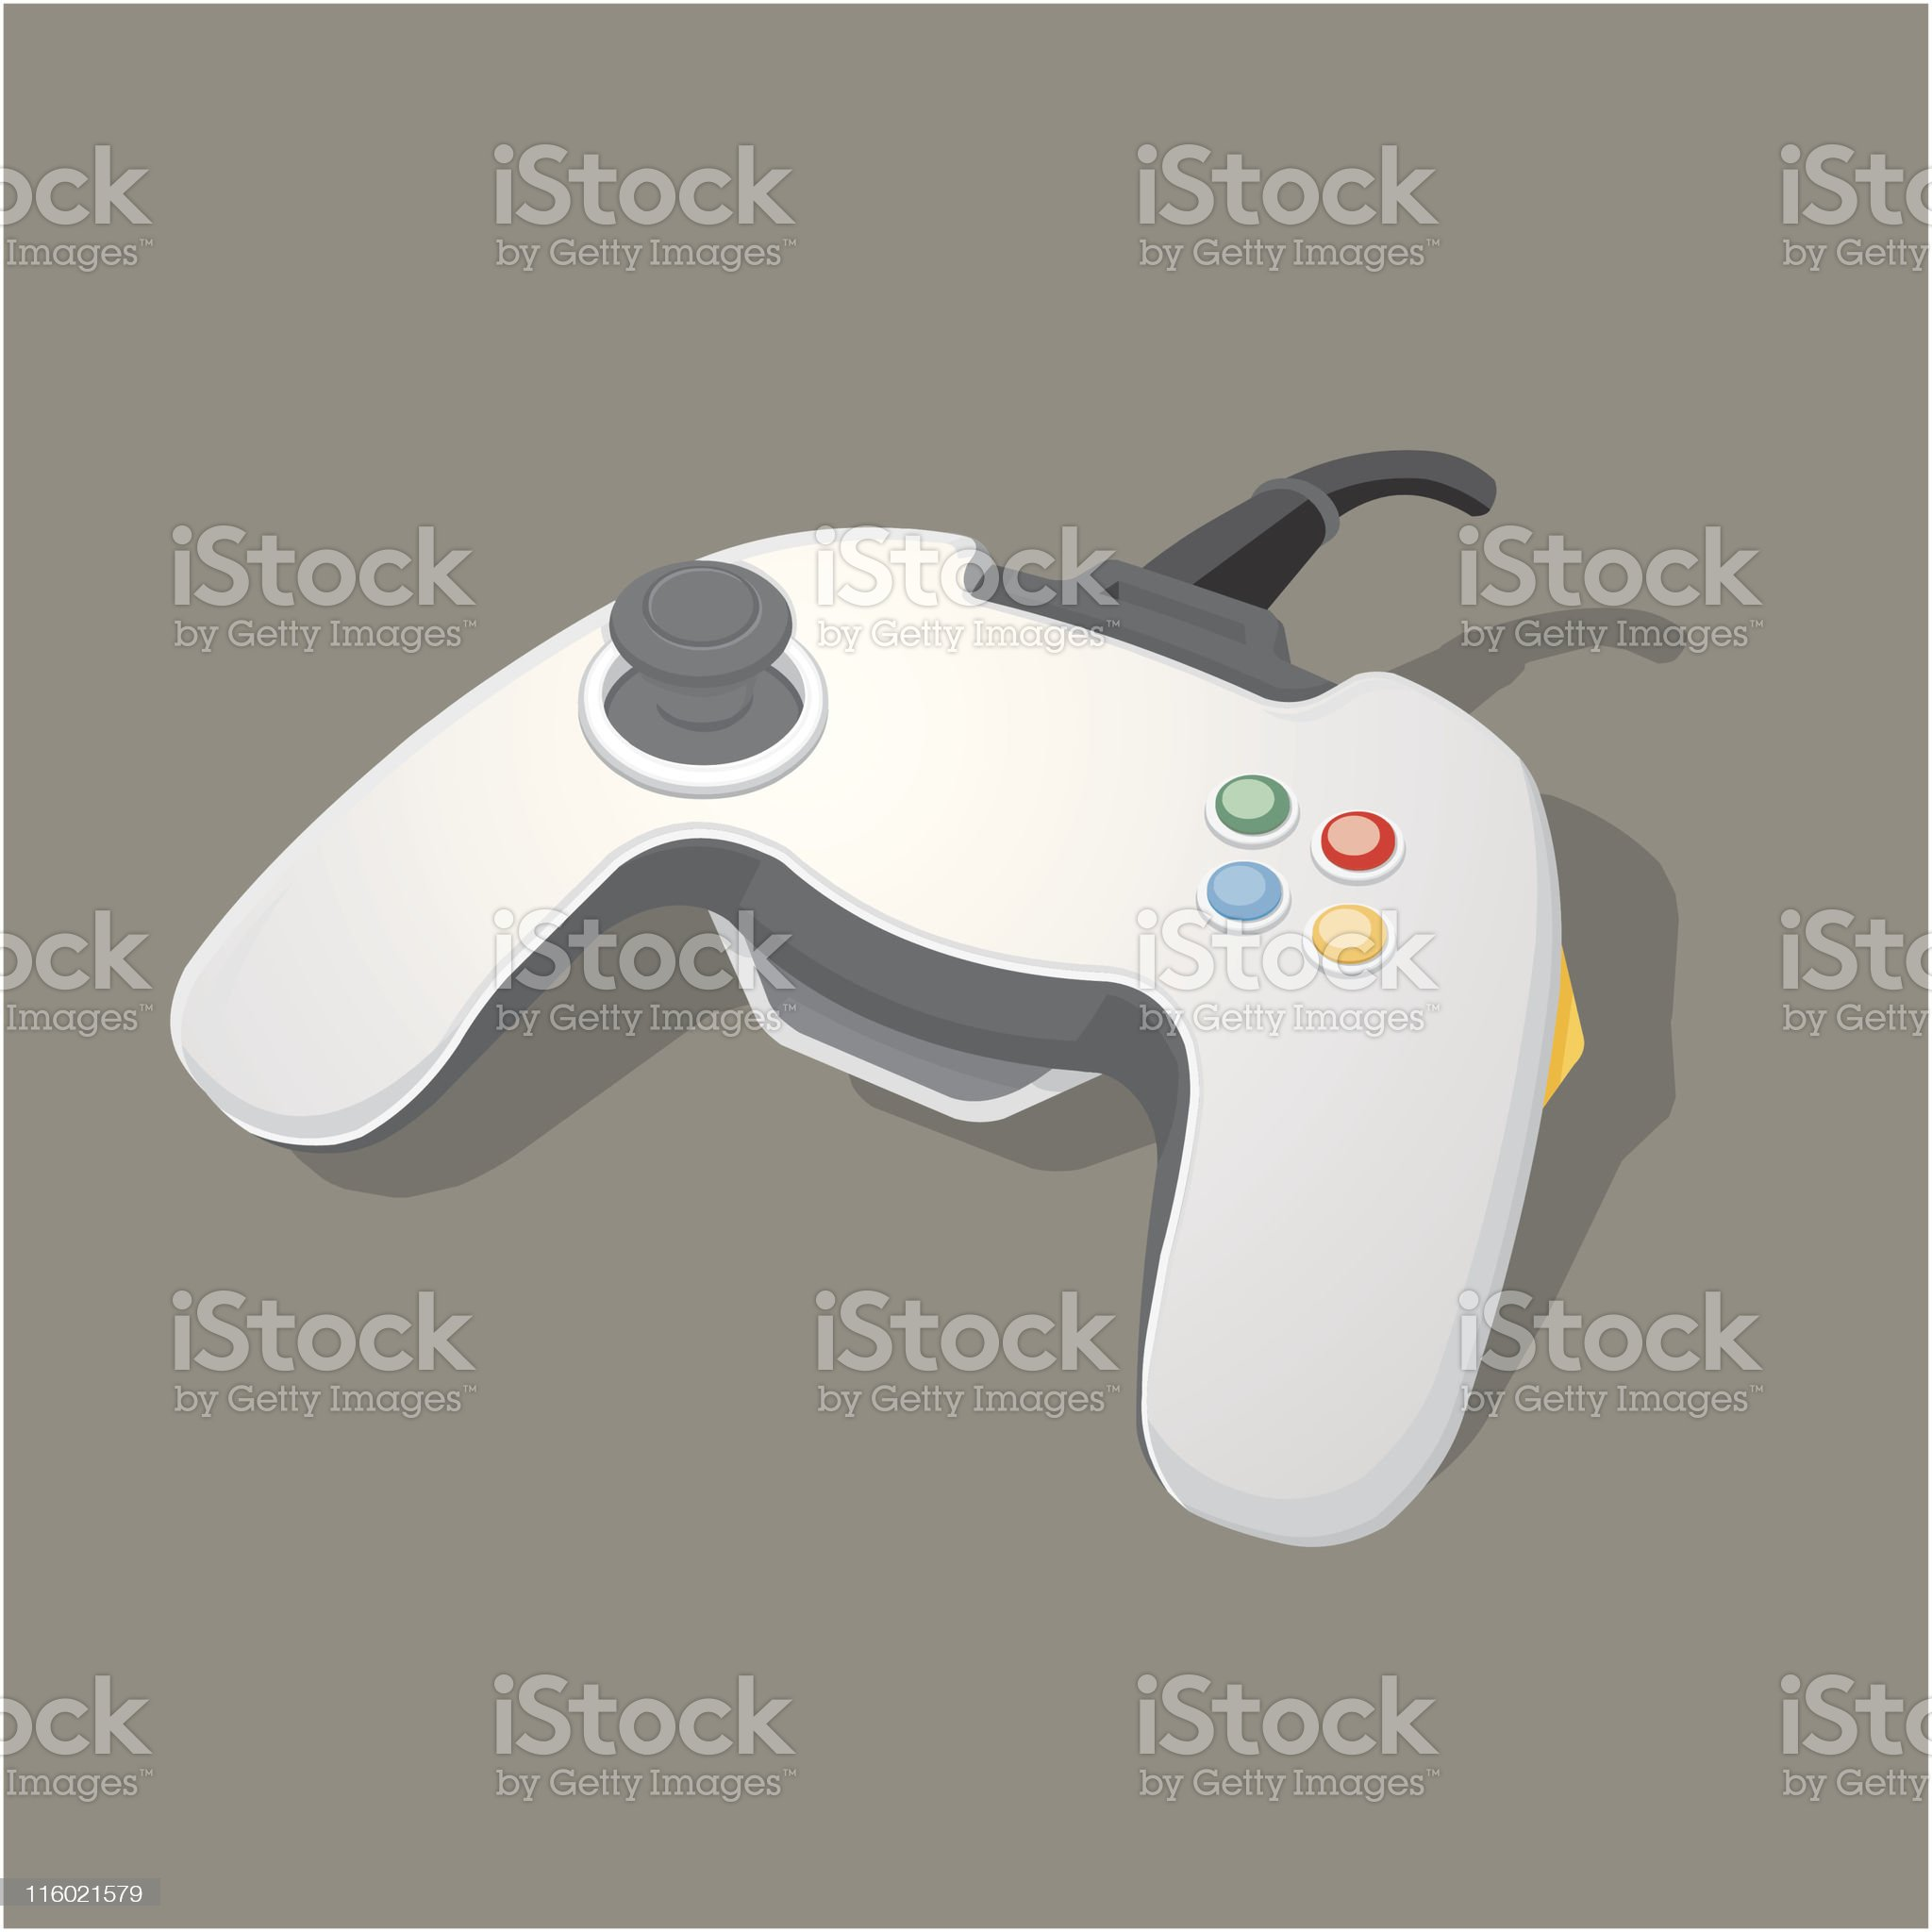 Games Console Joypad royalty-free stock vector art